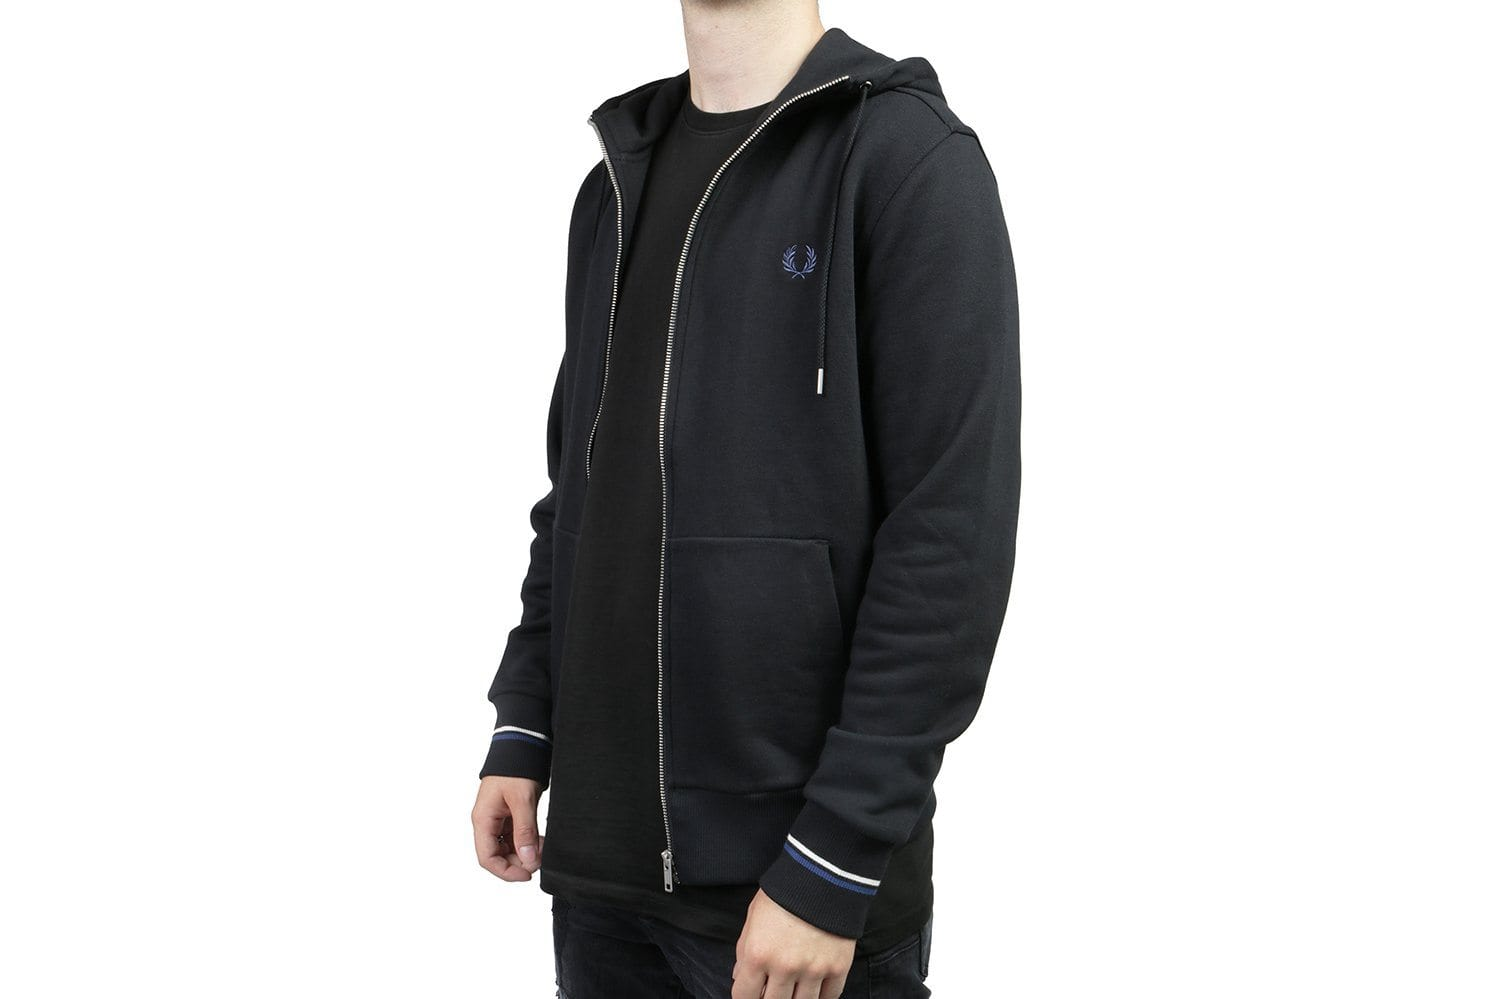 HOODED ZIP THROUGH SWEATSHIRT - J7536 MENS SOFTGOODS FRED PERRY